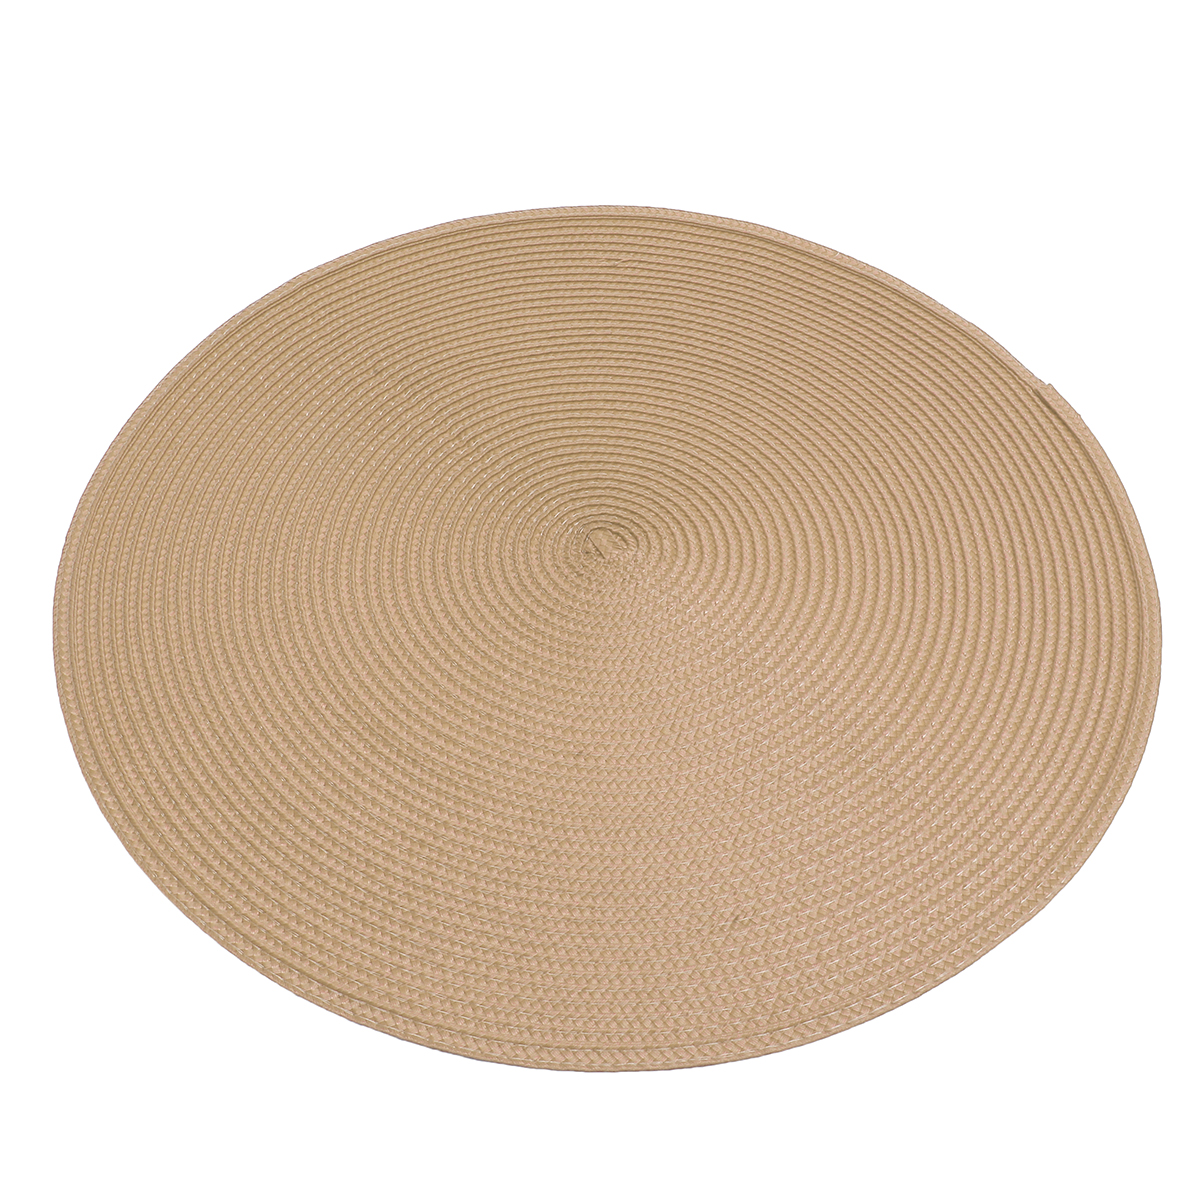 Round Jacquard Woven Non Slip Placemats Kitchen Dining Table Mat Heat Resistant 6 Colors